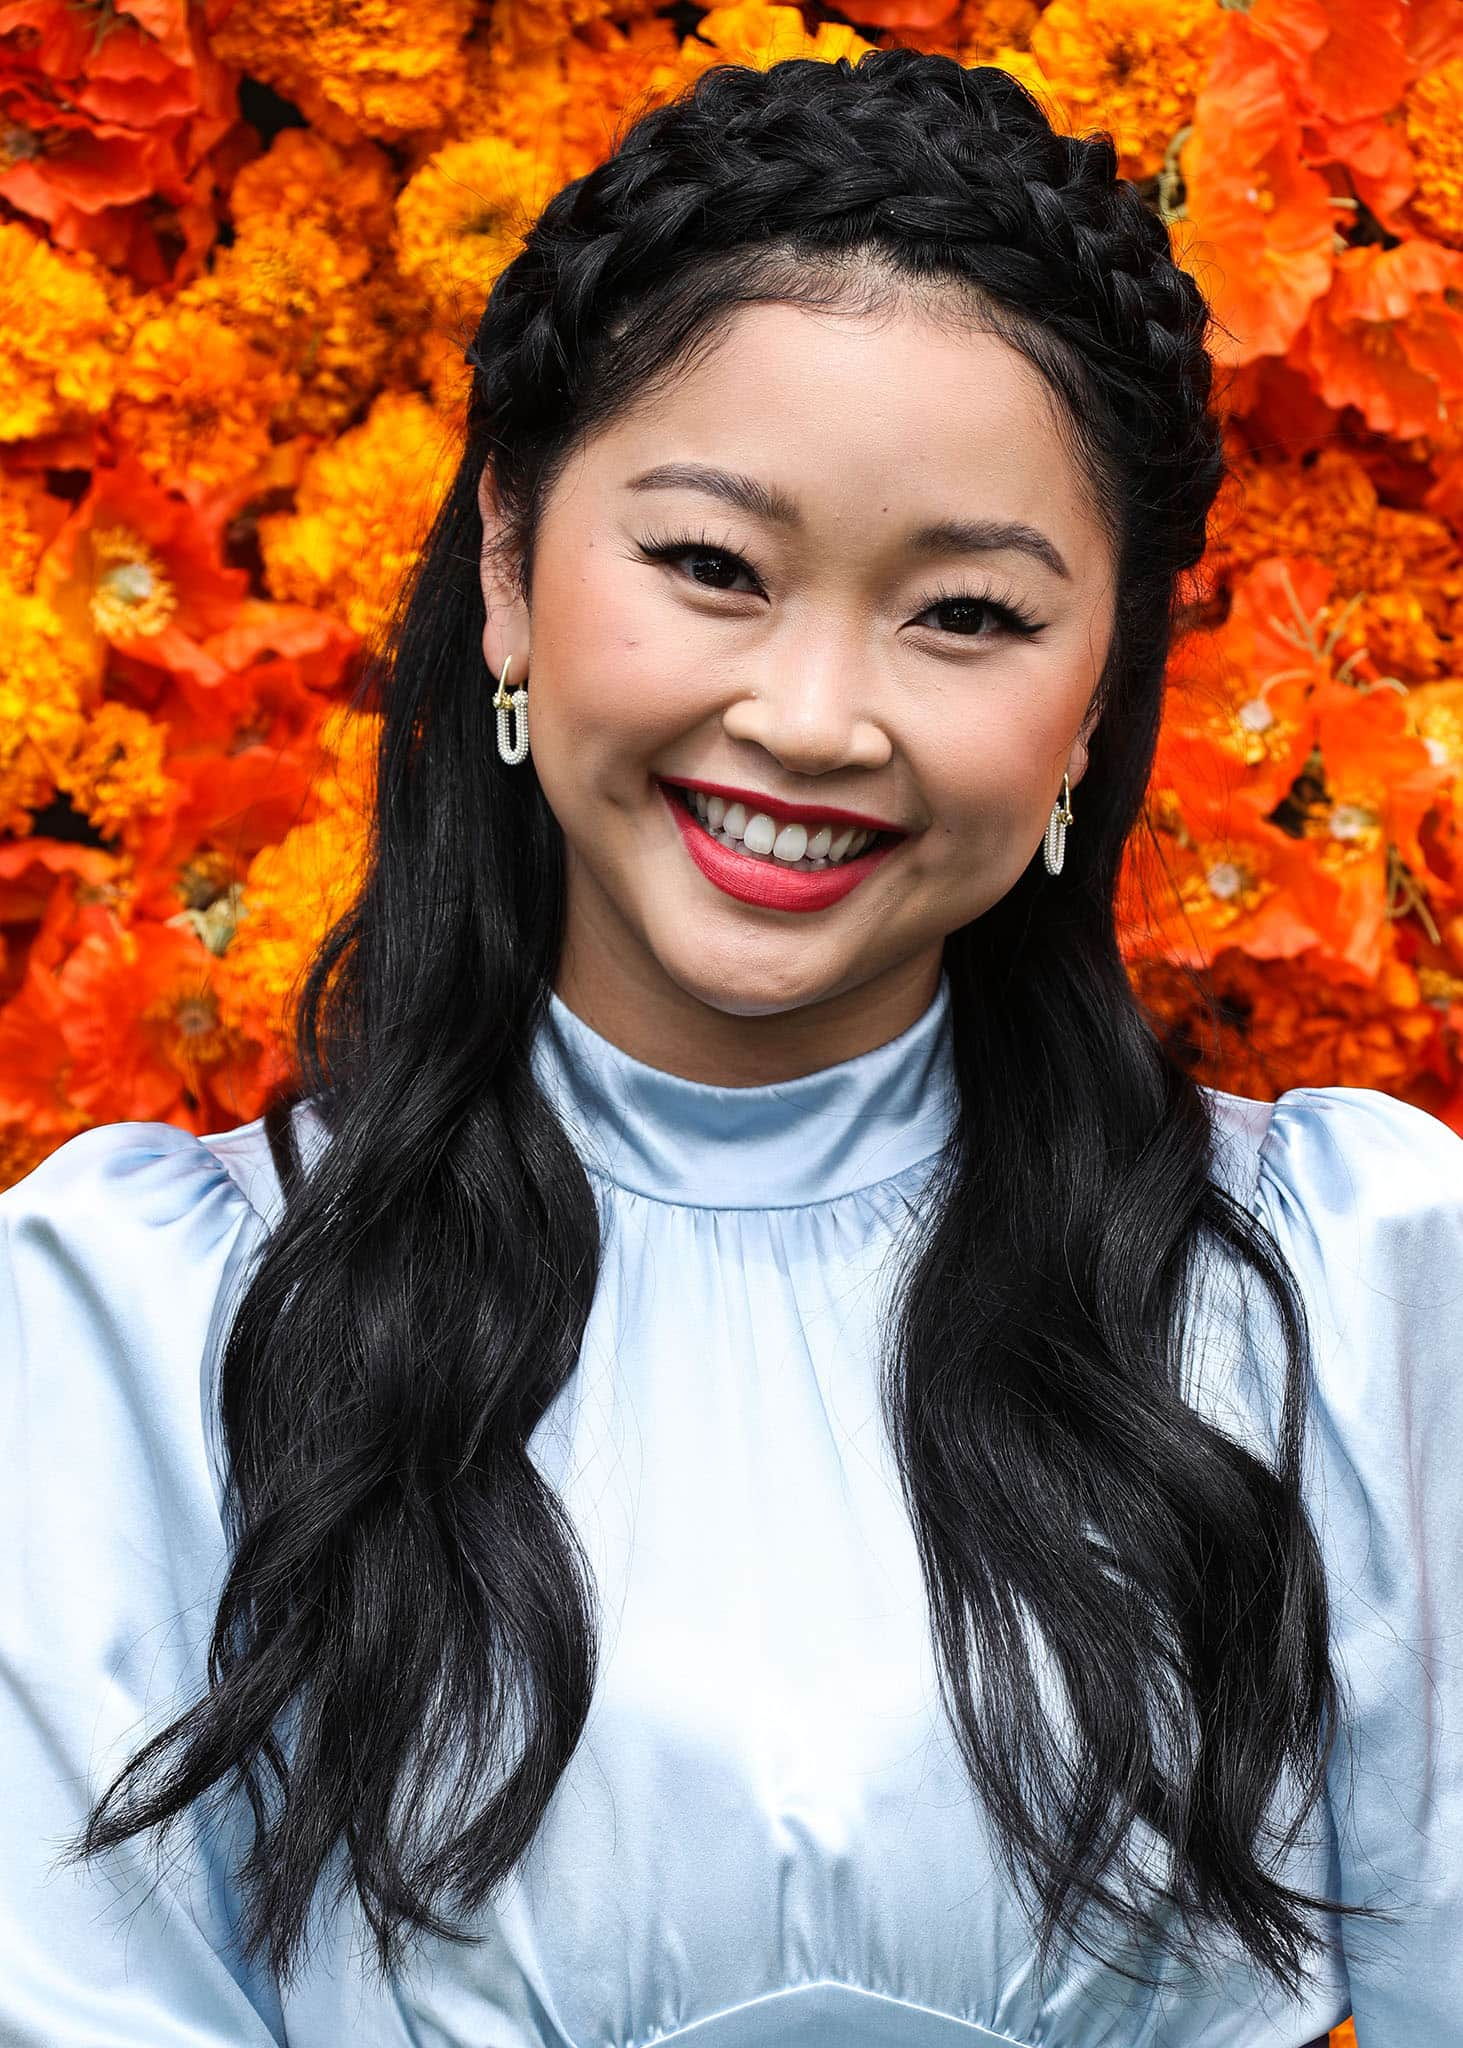 Lana Condor wears red lipstick and styles her hair in soft waves with a crown braid